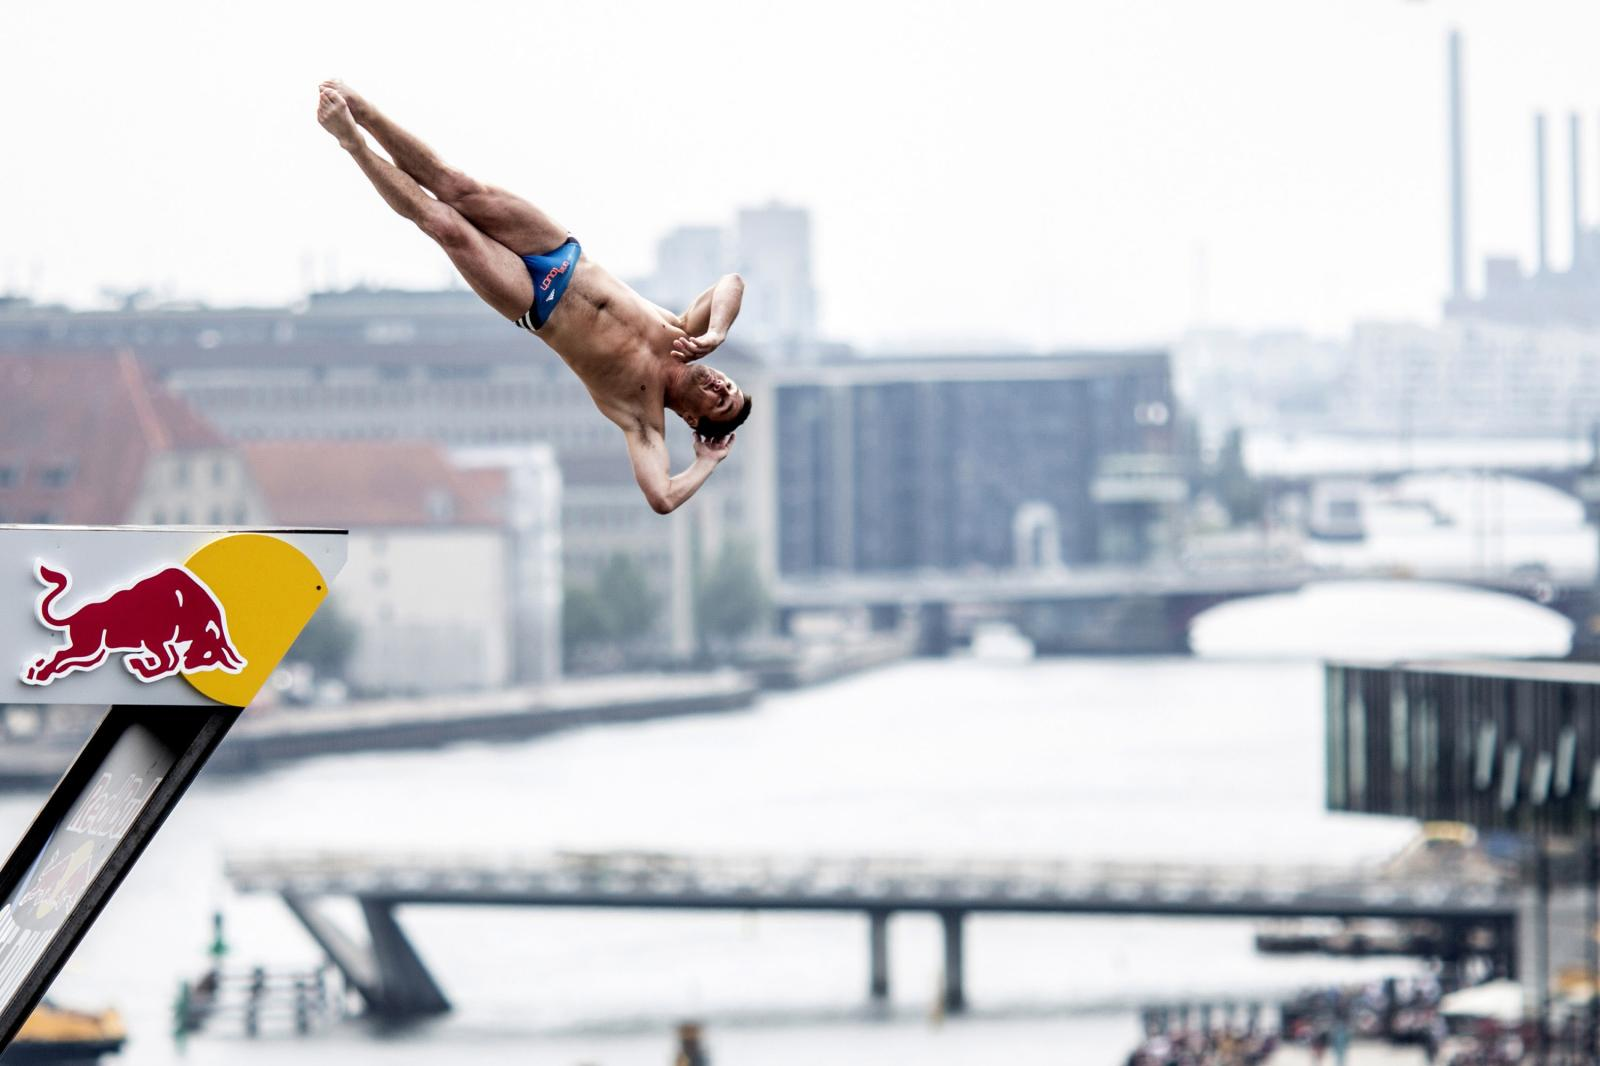 Blake Aldridge blog: A view from Copenhagen Opera House – Red Bull Cliff Diving World Series